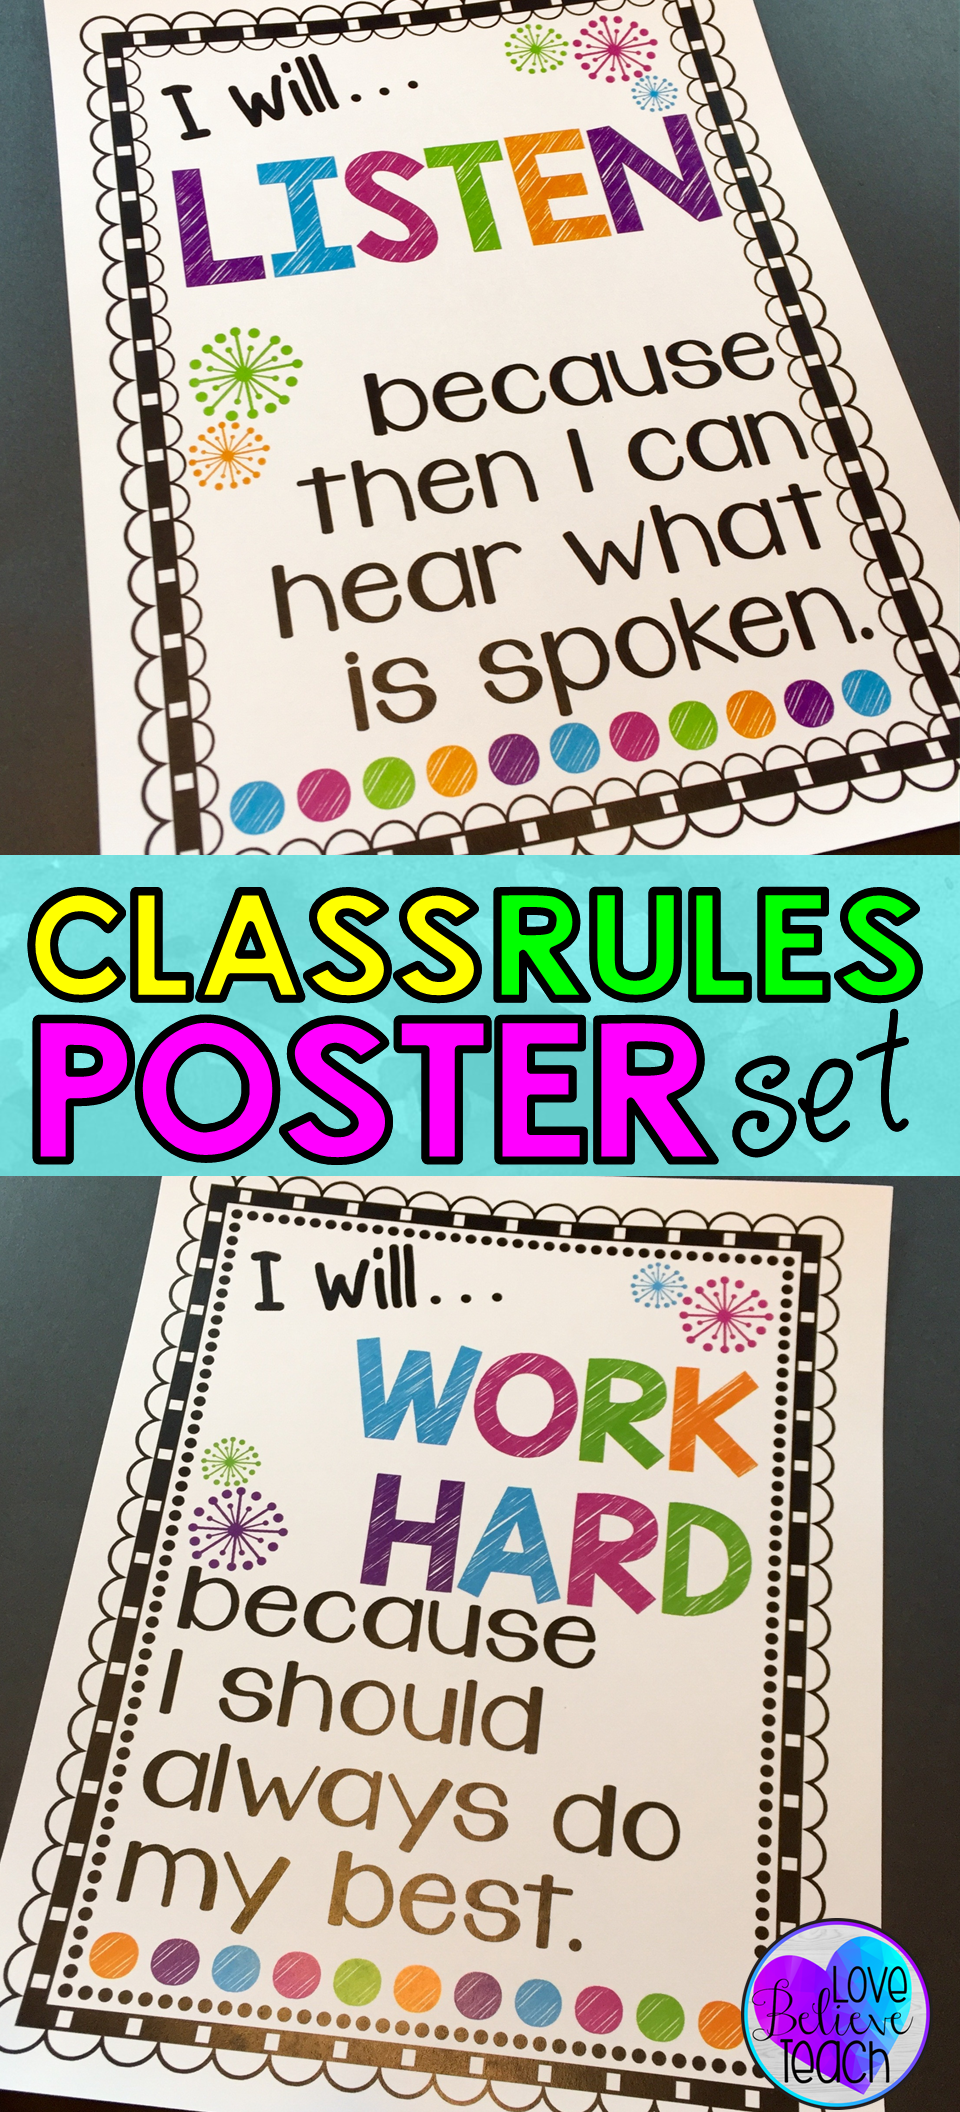 Classroom Rules Posters Class Rules Posters Classroom Rules Poster Class Rules Poster Classroom Rules